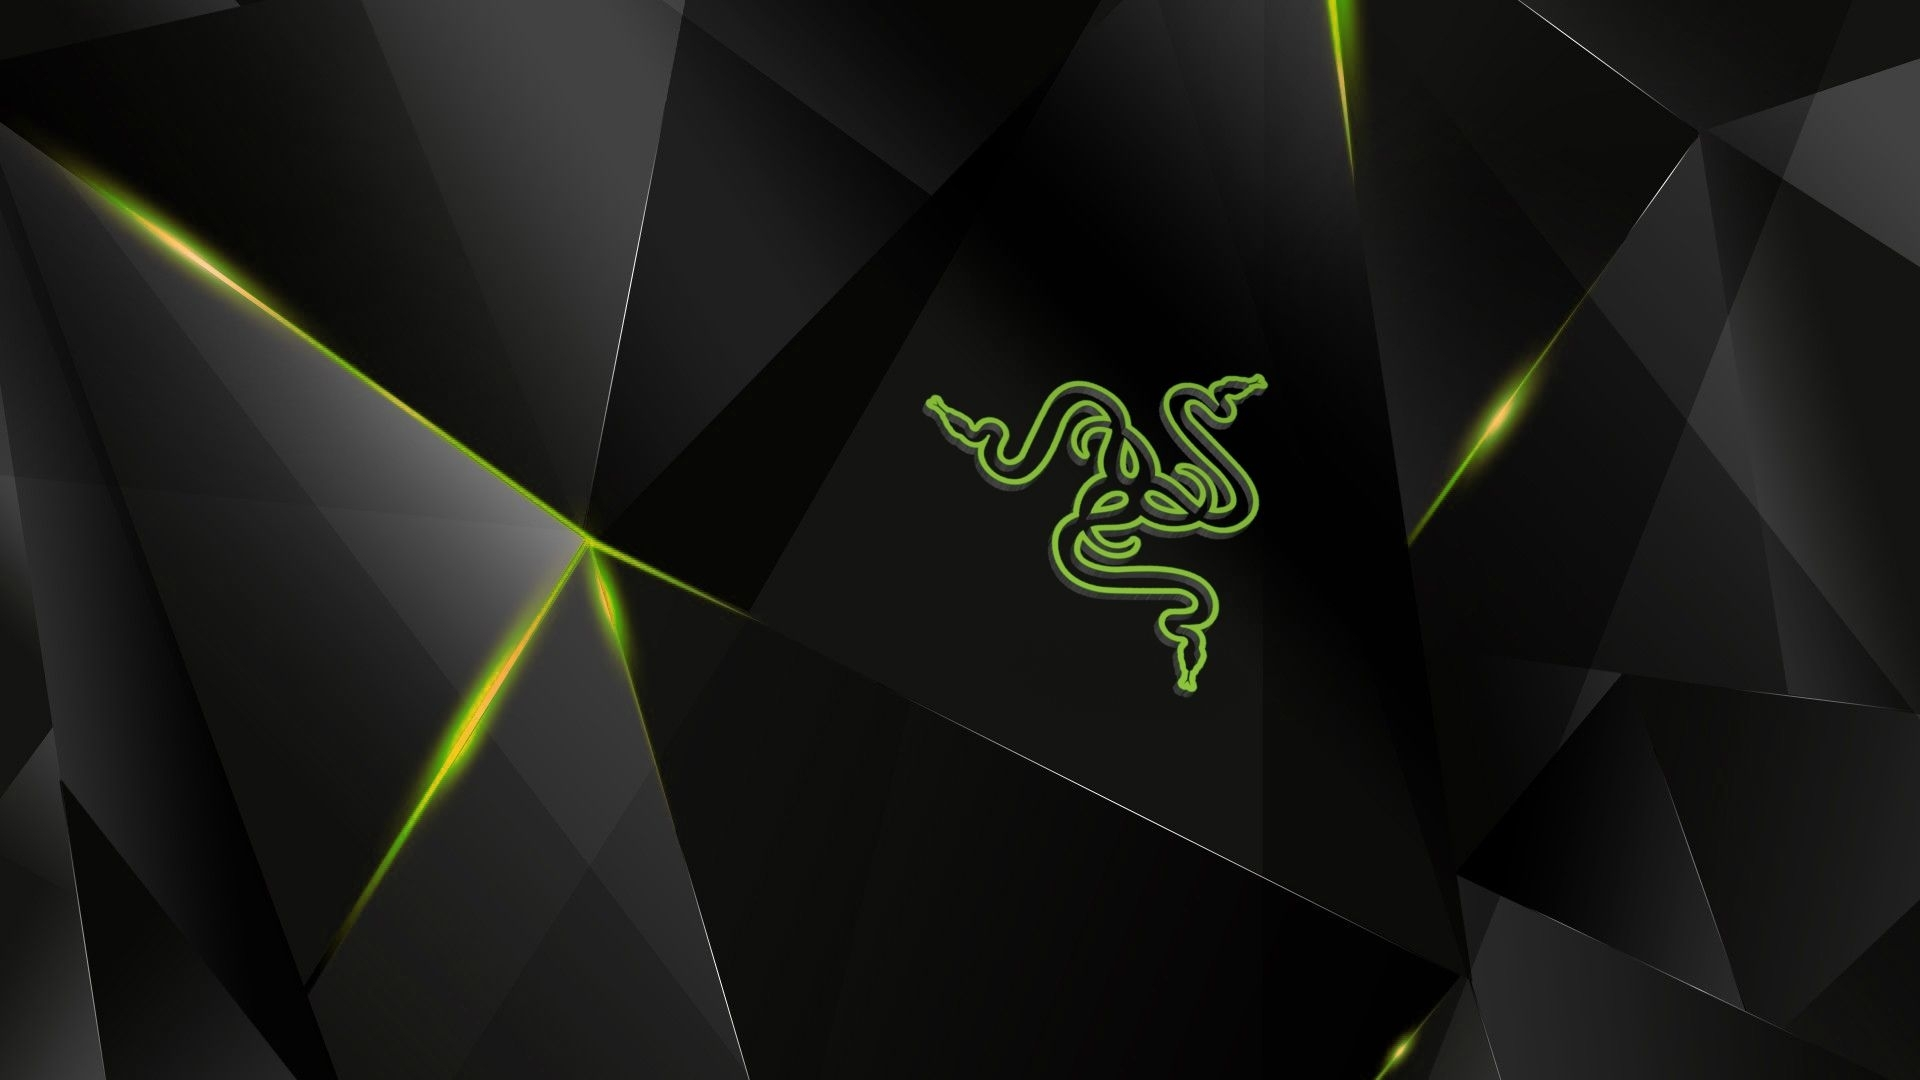 razer teases their first smartphone, more details on november 1